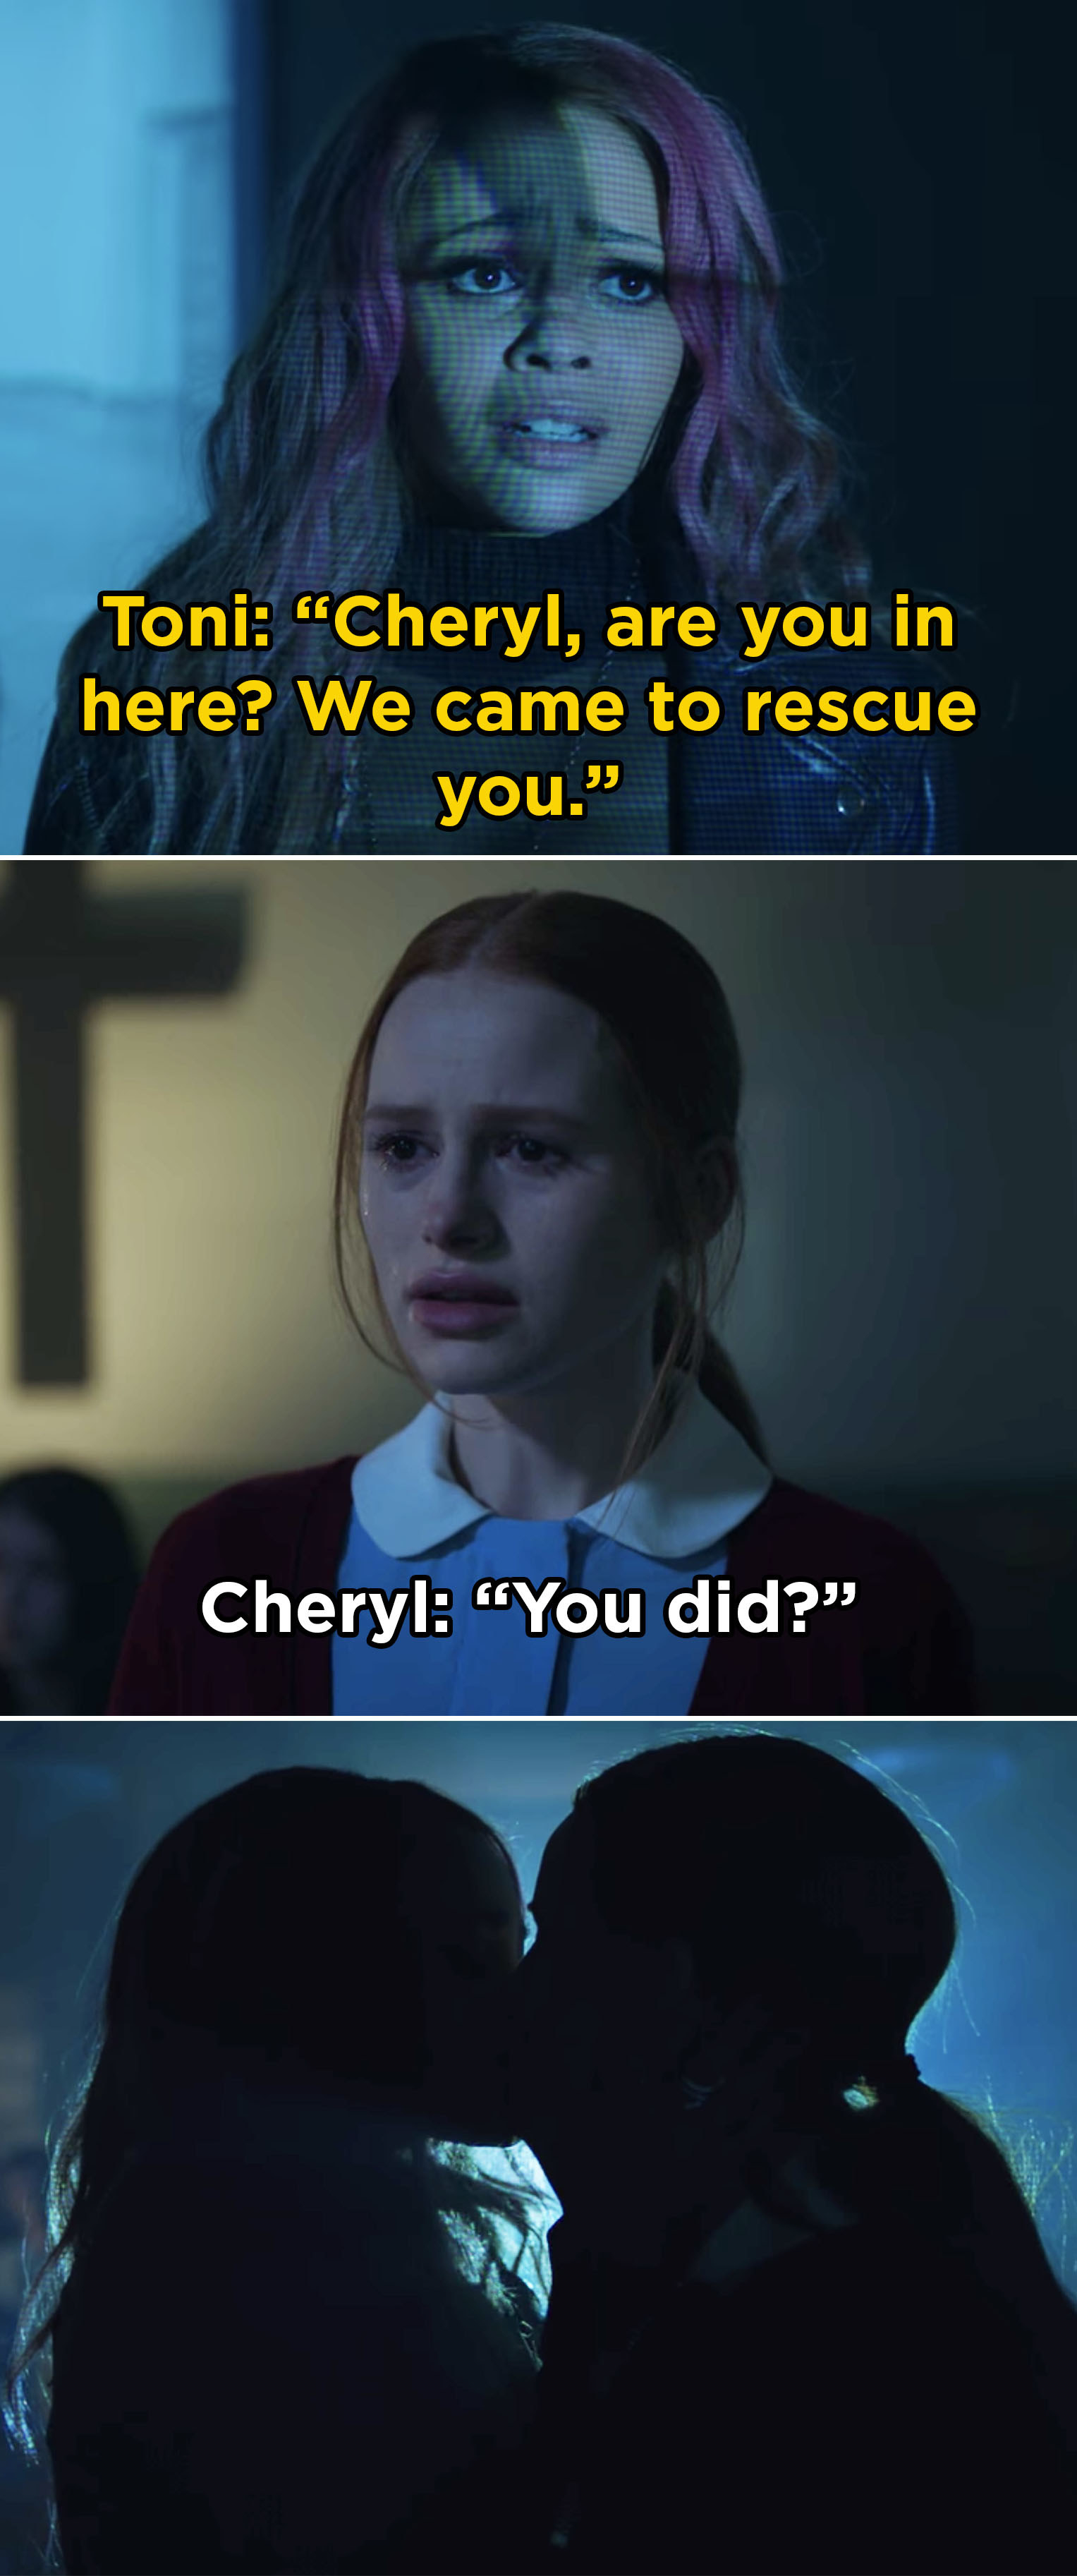 Also in  Riverdale , Cheryl and Toni finally got together after Toni and Veronica mounted a rescue to save Cheryl from the Sisters of Quiet Mercy.